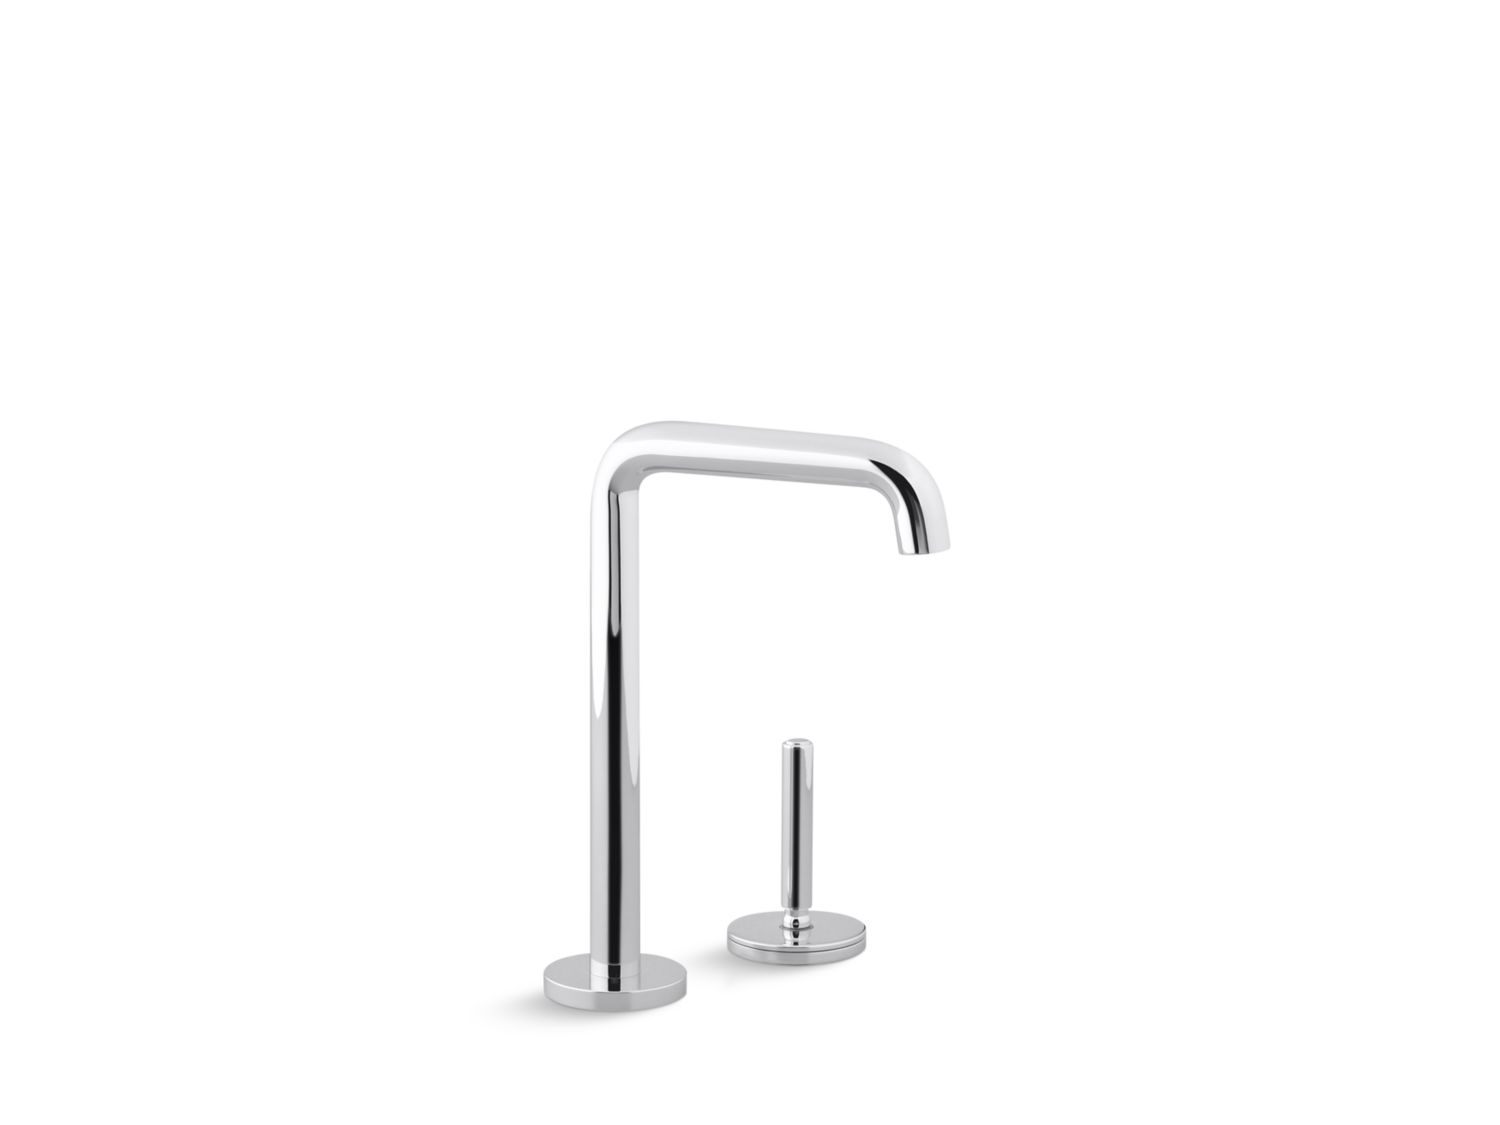 lever spout low cp bathroom collection faucet handles designer sink silhouette page kallista se faucets landing per lv rgb sleek